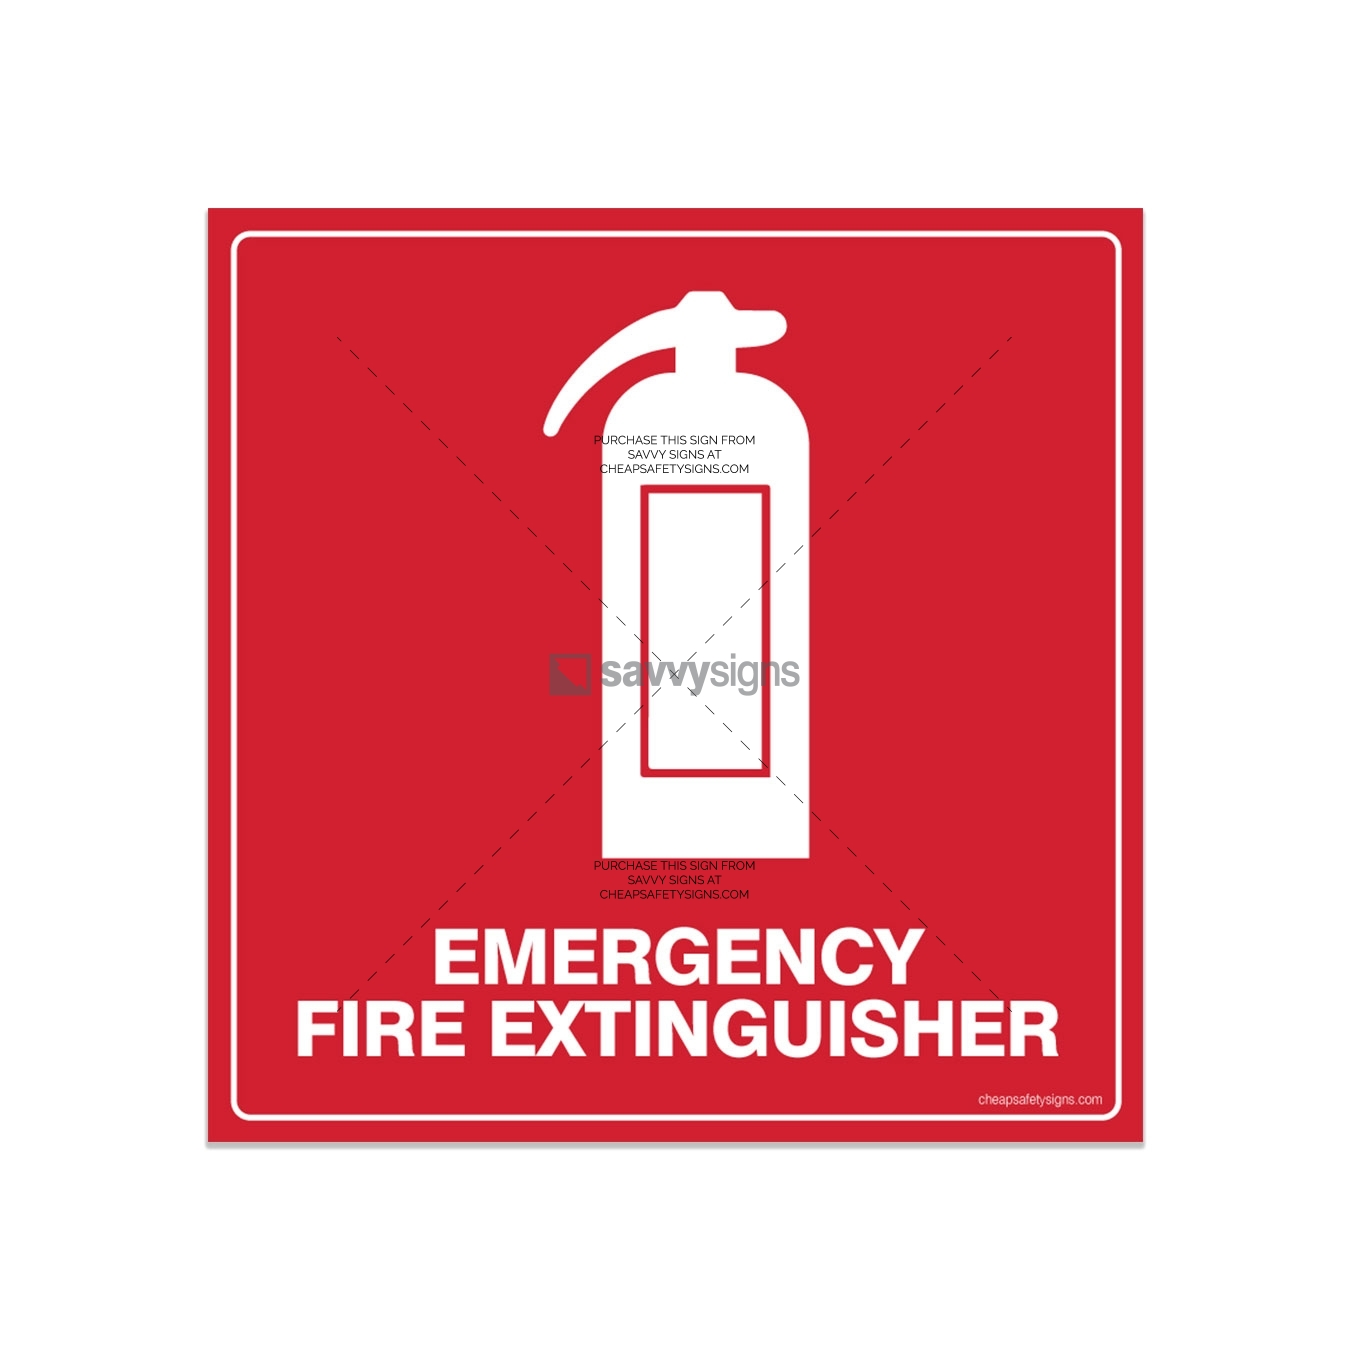 SSFIR3018-FIRE-SAFETY-Workplace-Safety-Signs_Savvy-Signs_v3